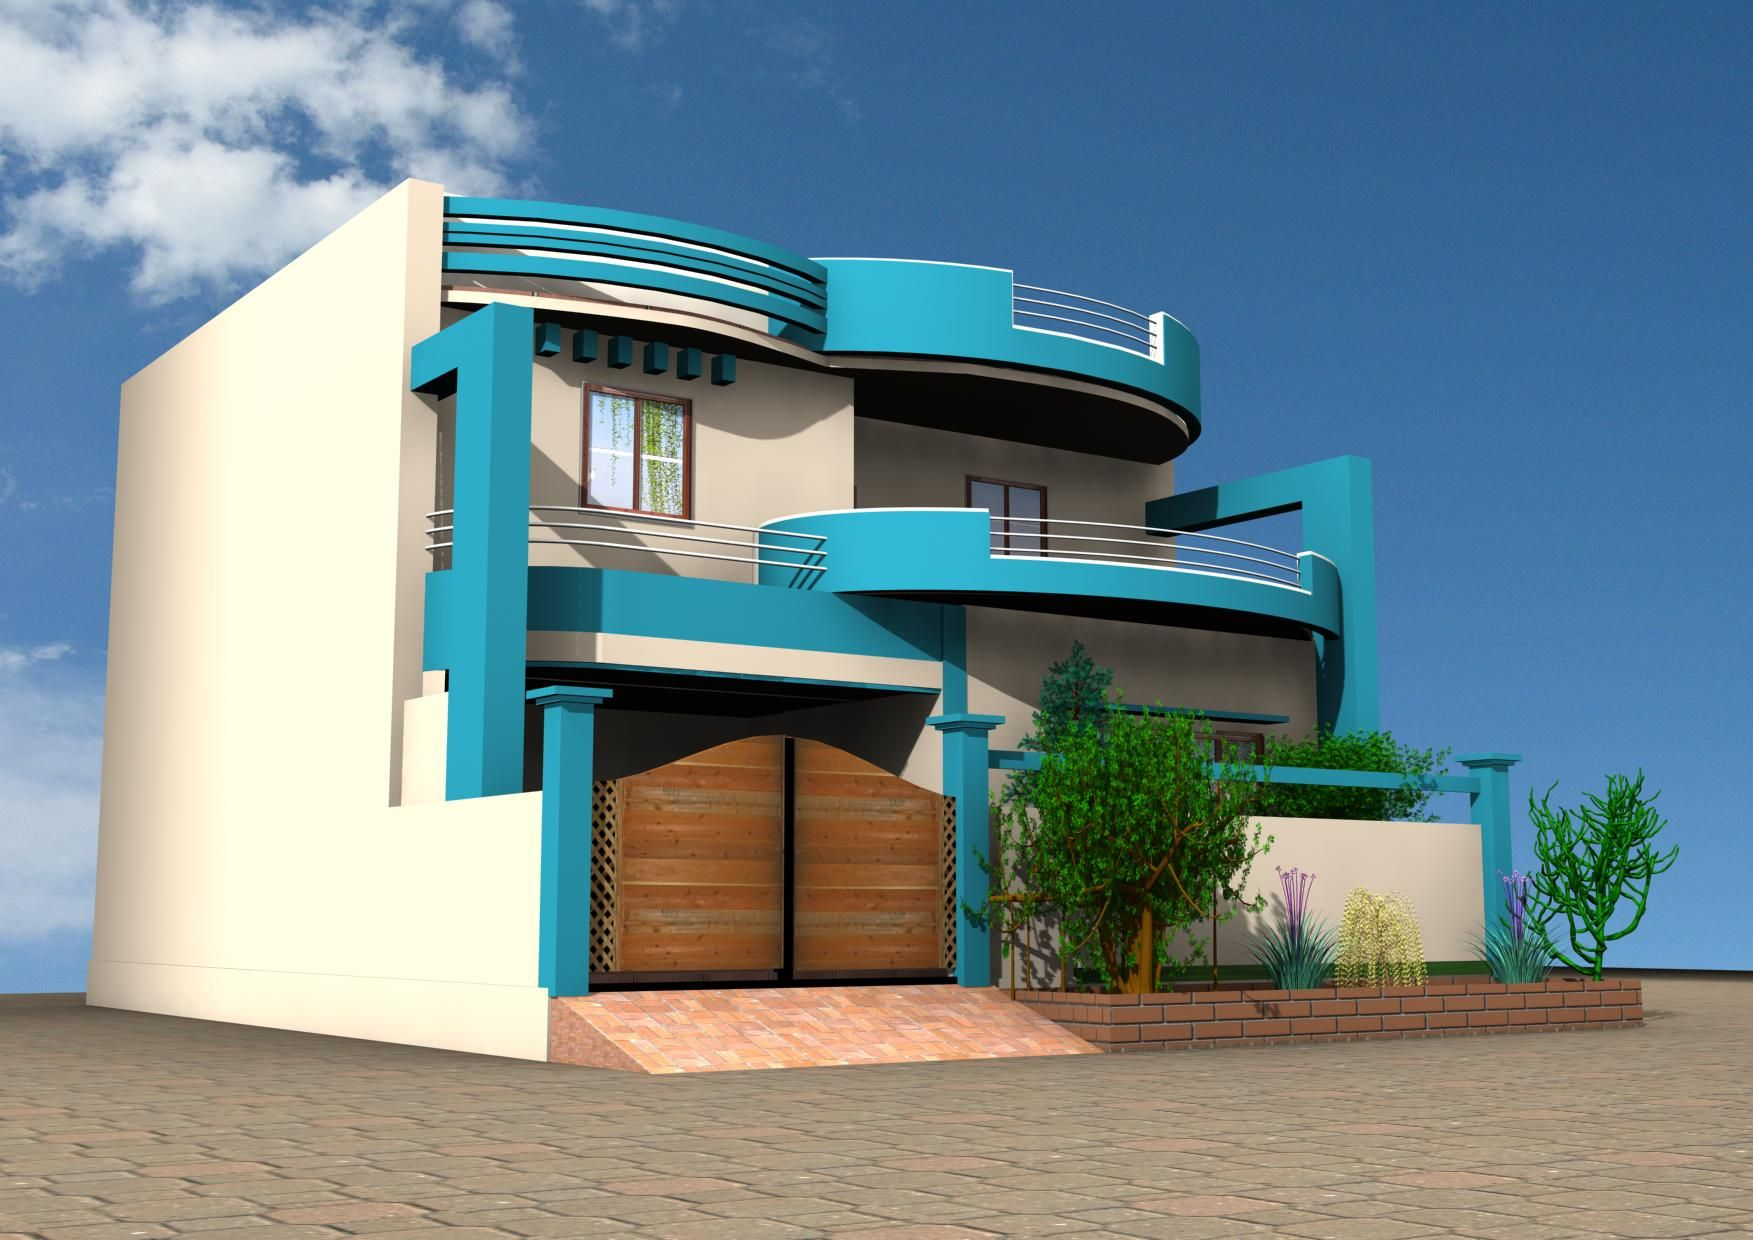 3d home design images hd 1080p for Exterior design program free